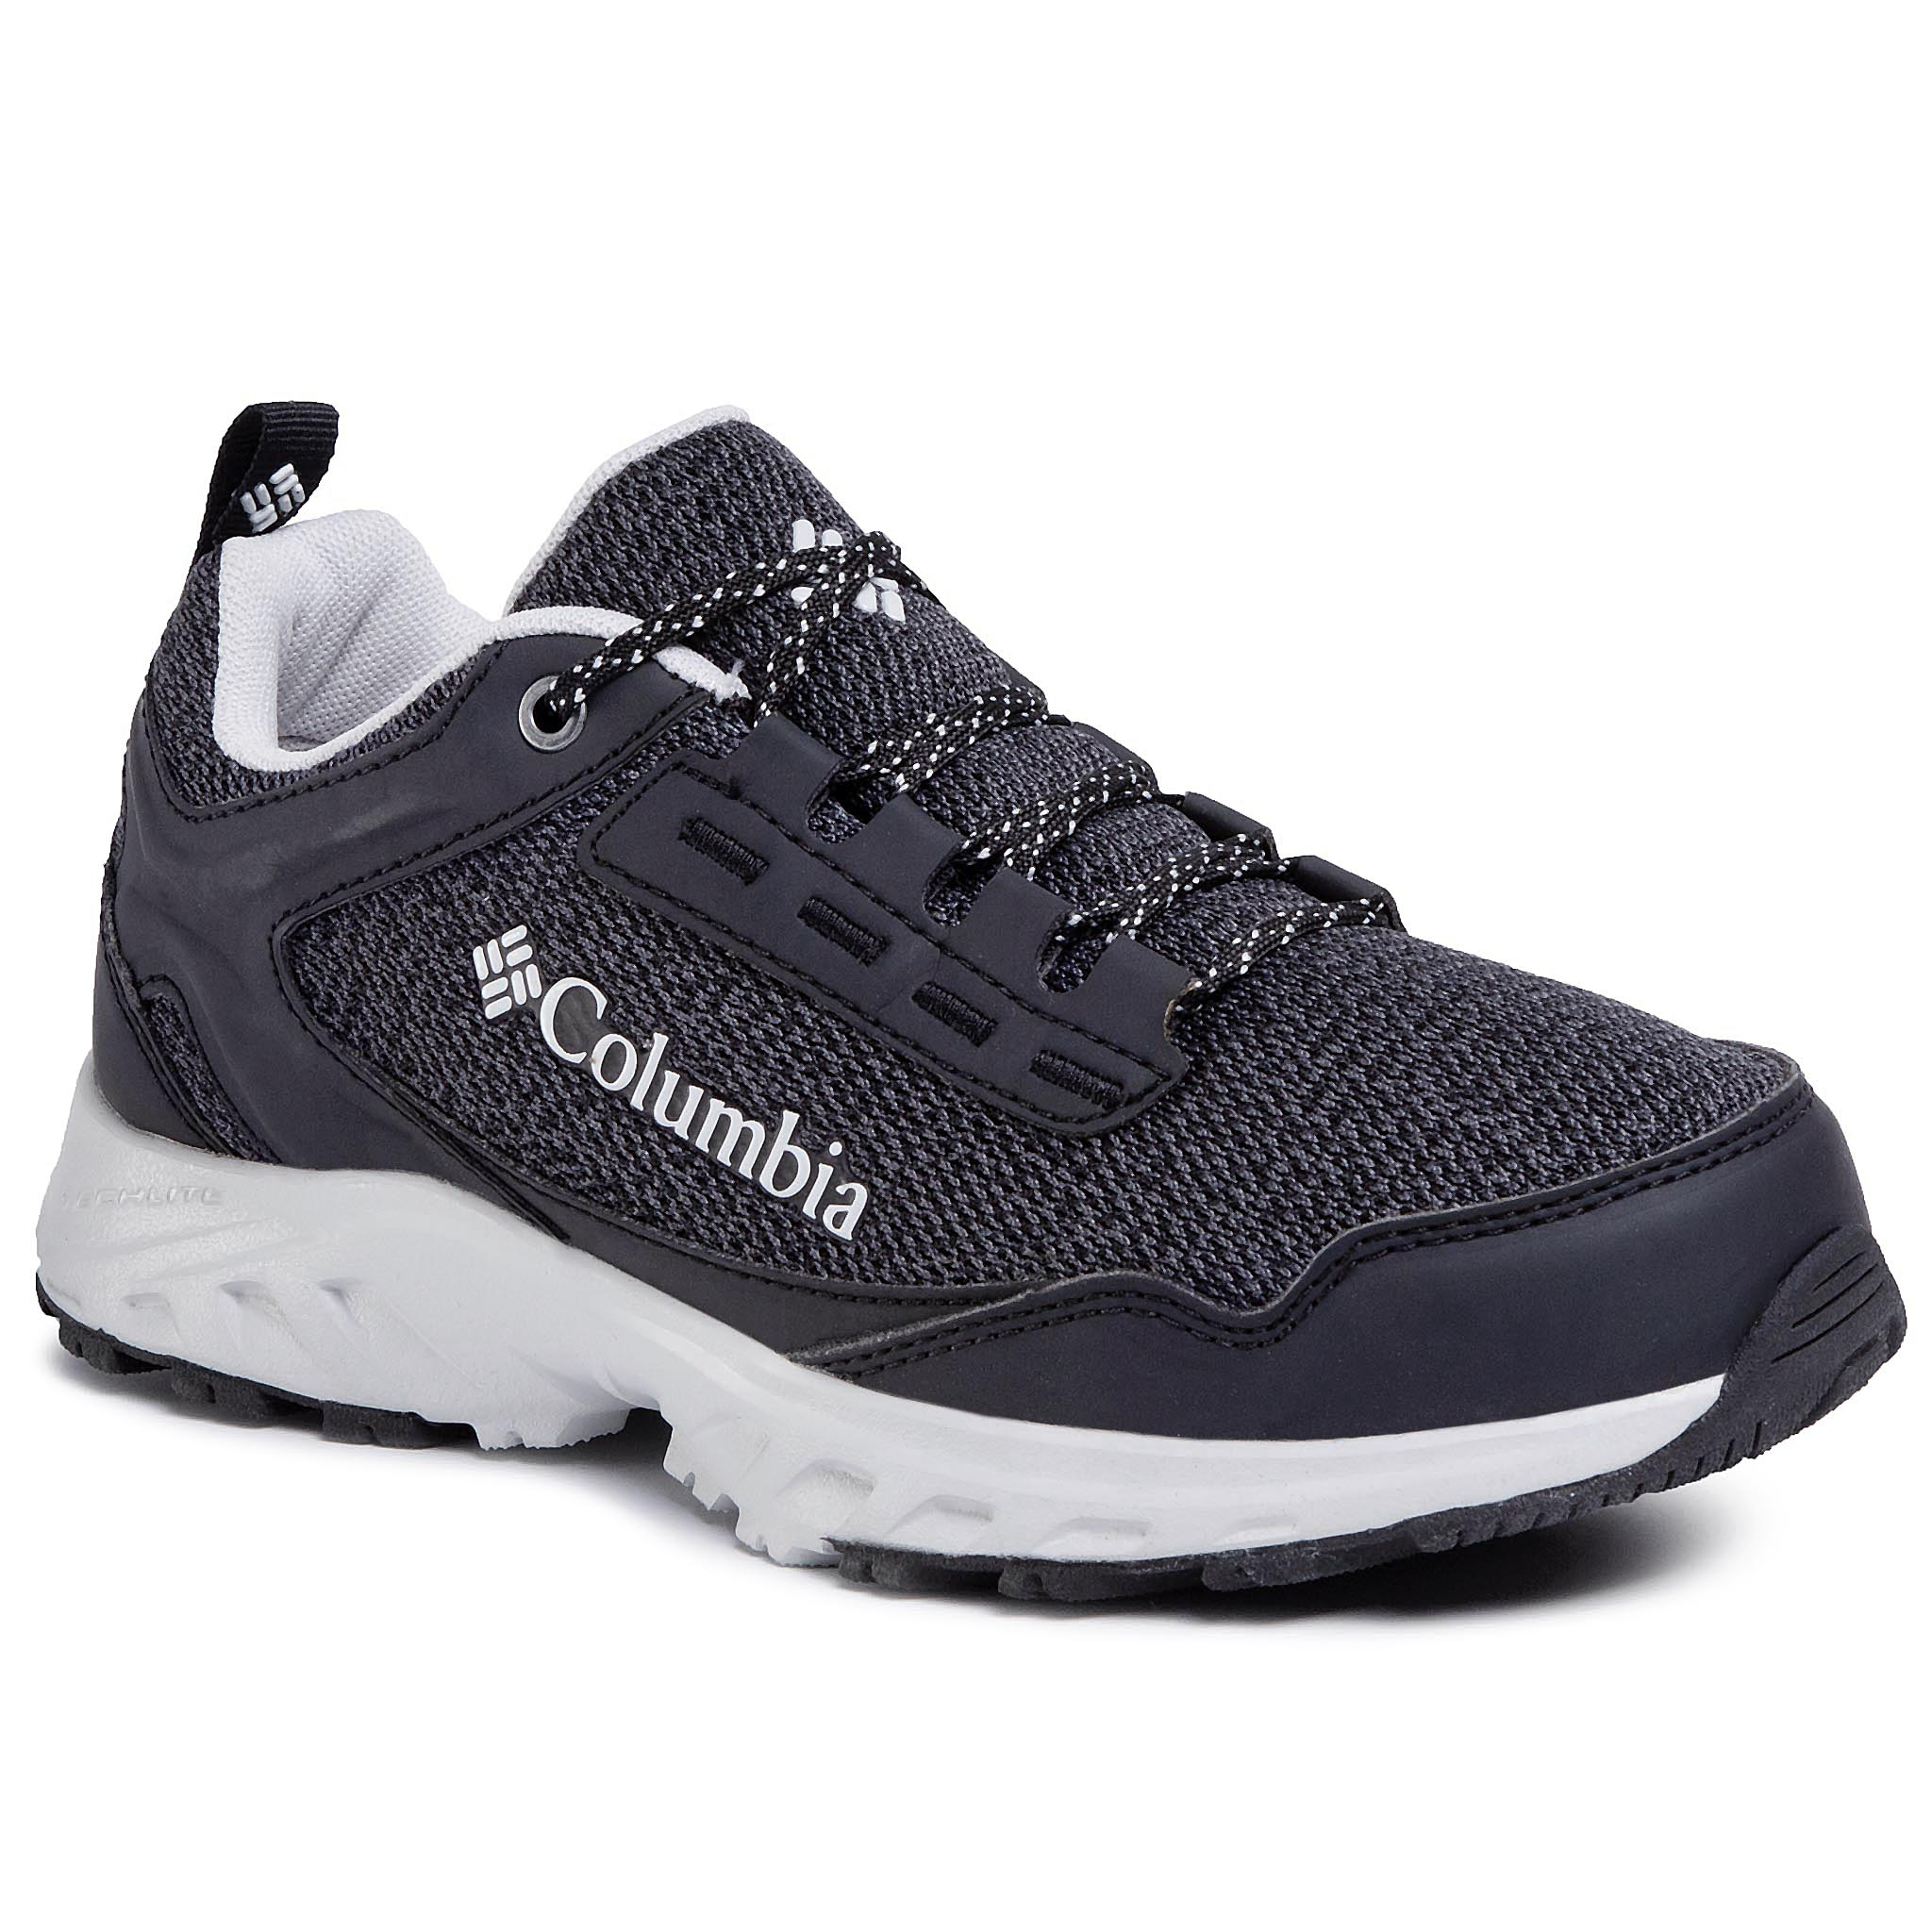 Trekkings COLUMBIA - Irrigon™ Trail Knit BL1908 Black/Grey Ice 010